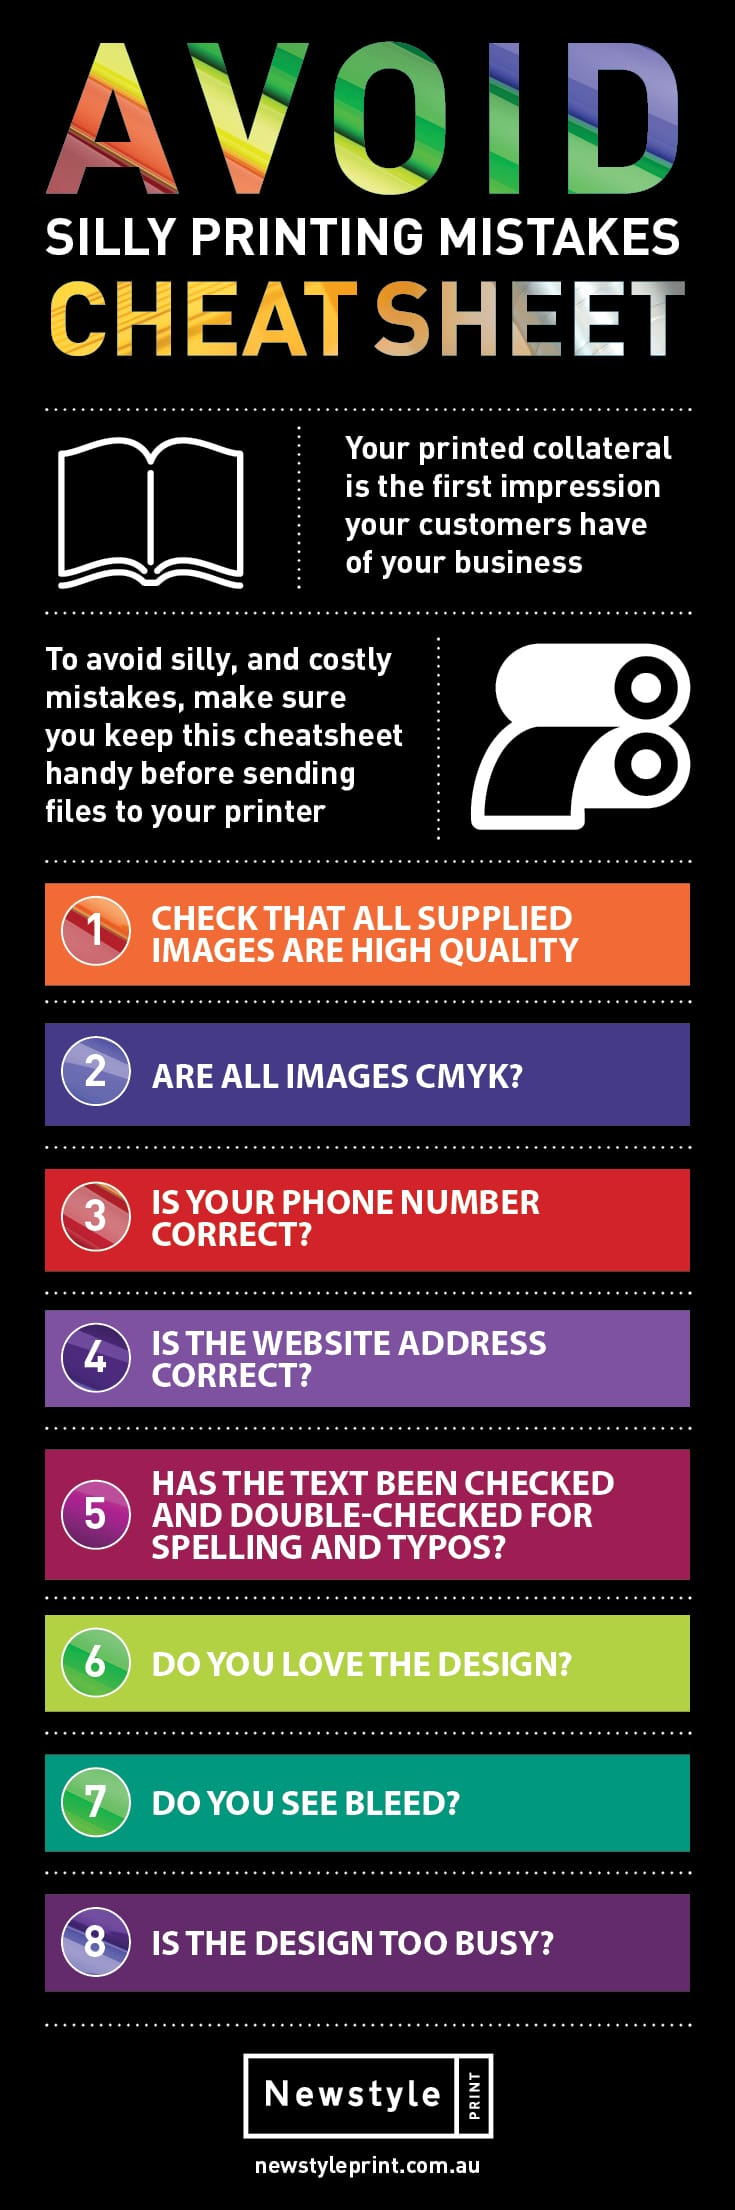 Top 5 Printing Mistakes Infographic